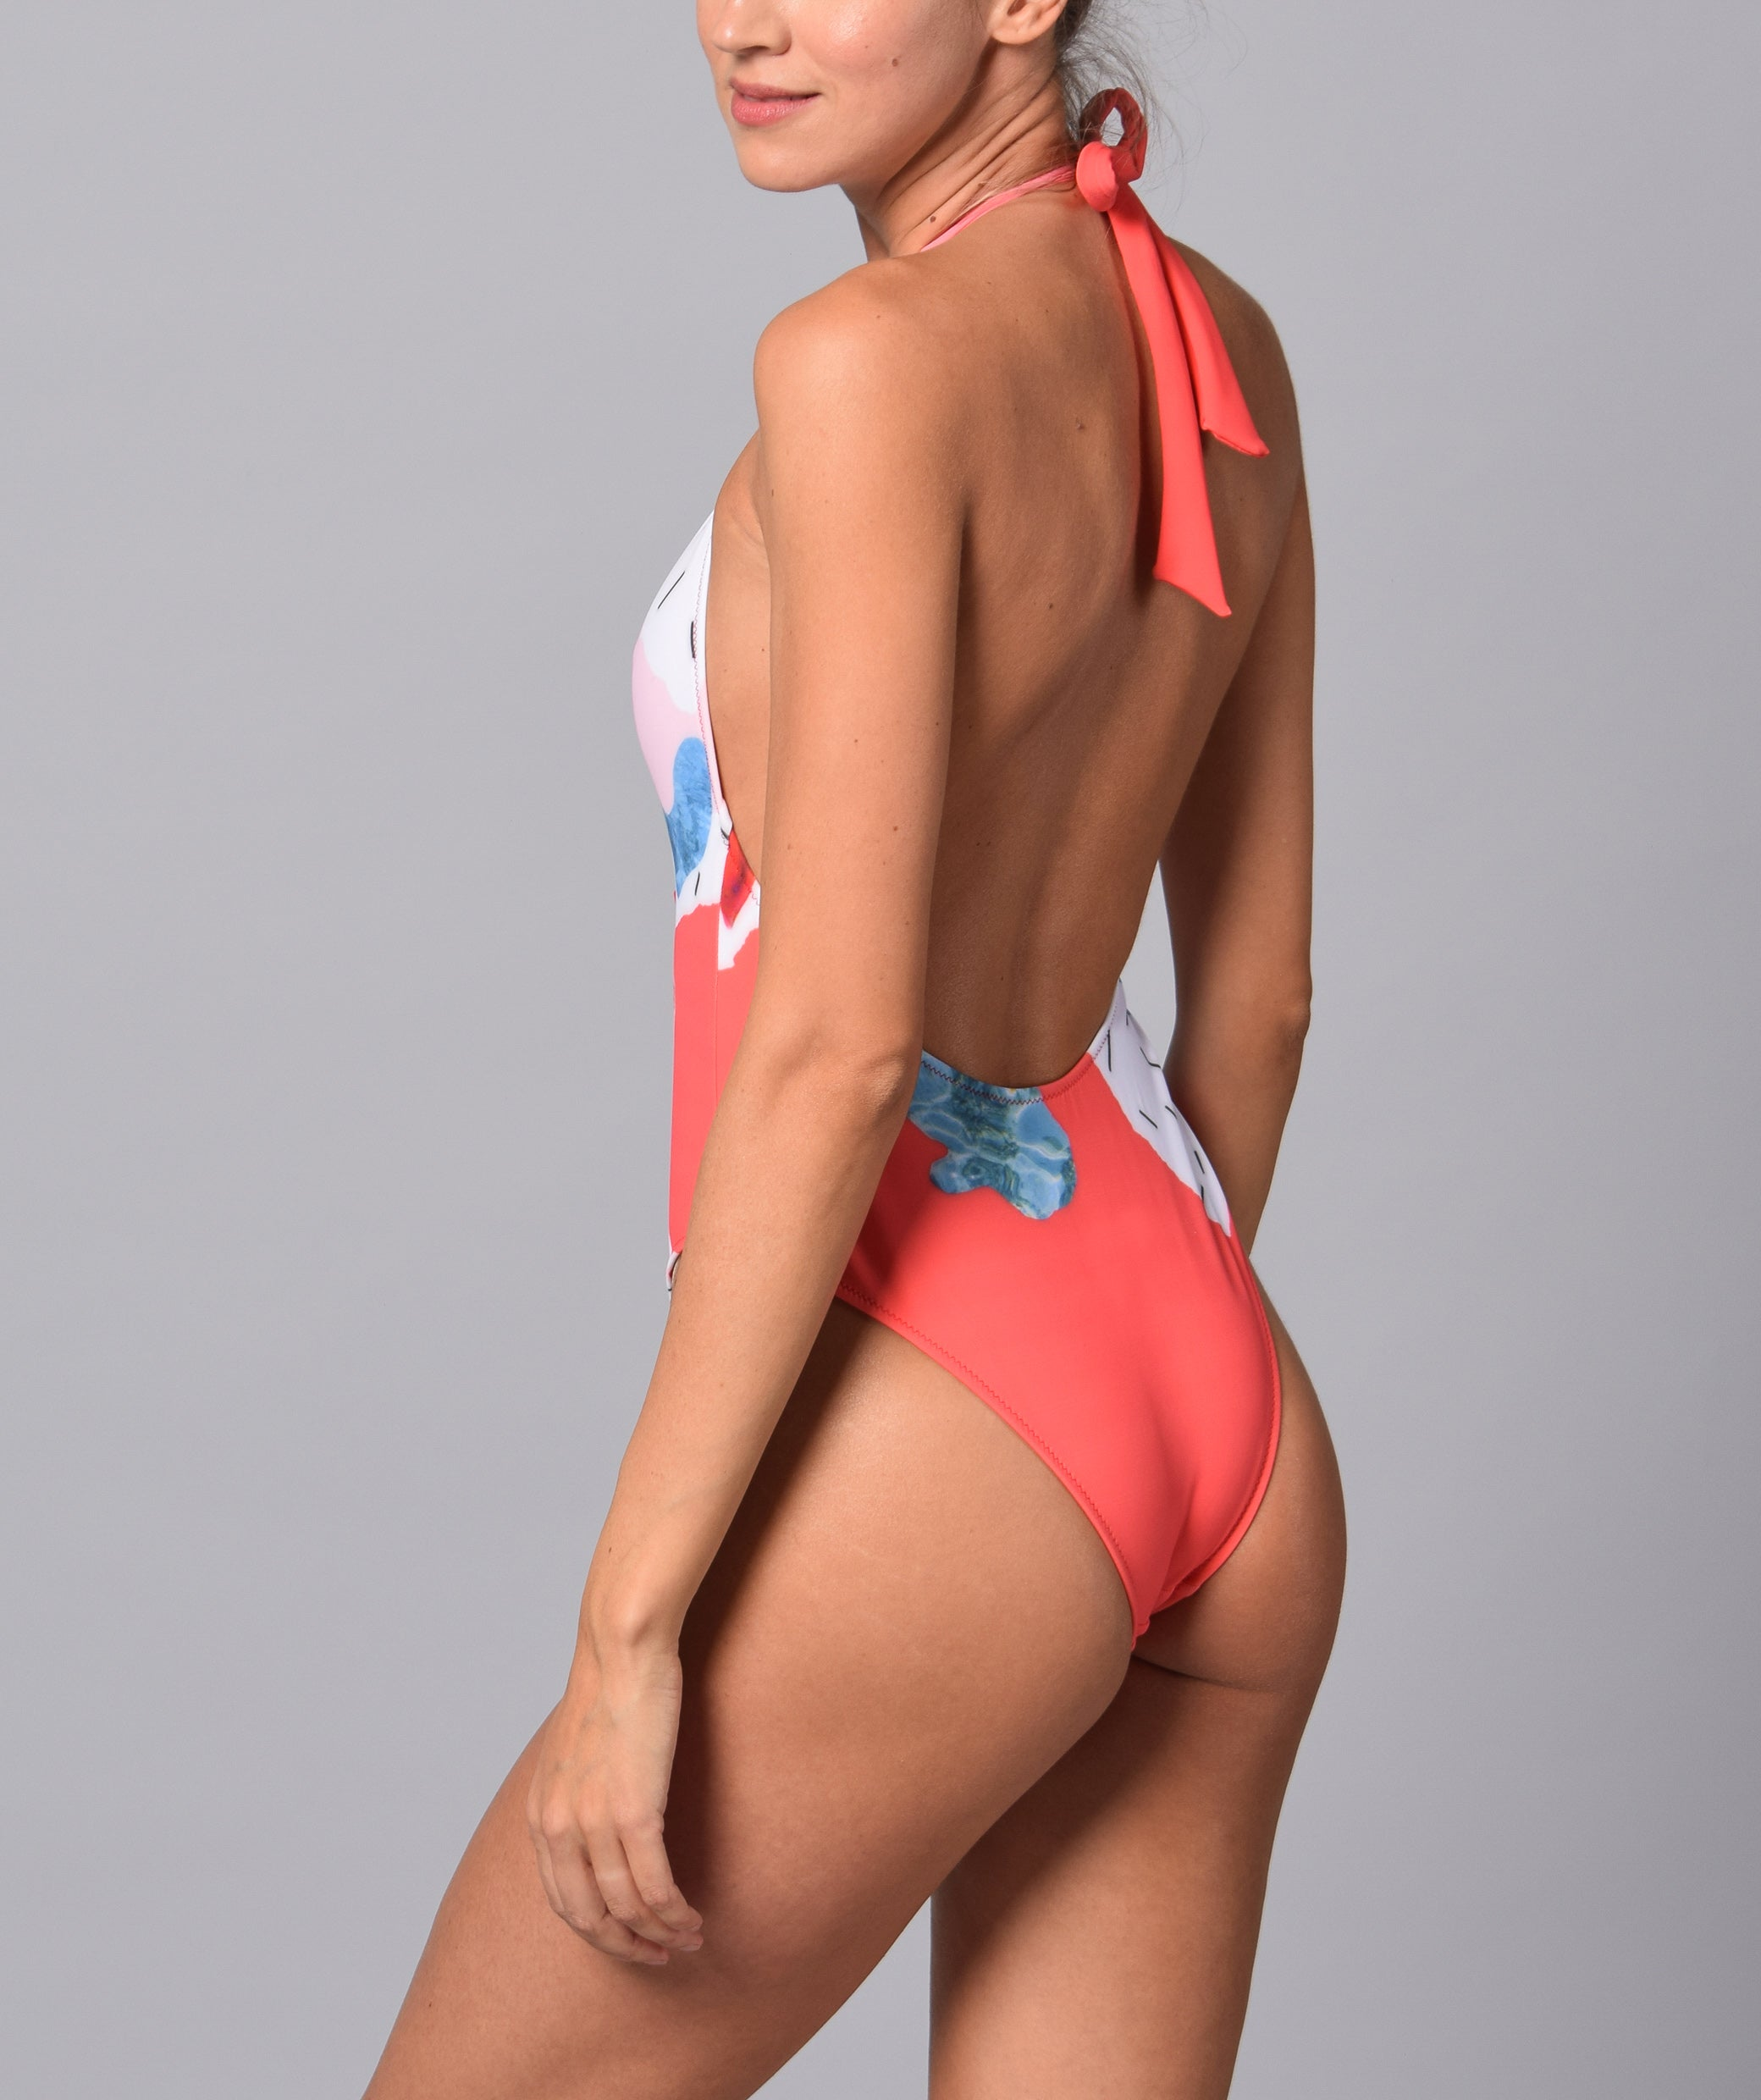 Boogaloo Girl wearing One-Piece Swimsuit Color Plunge - back